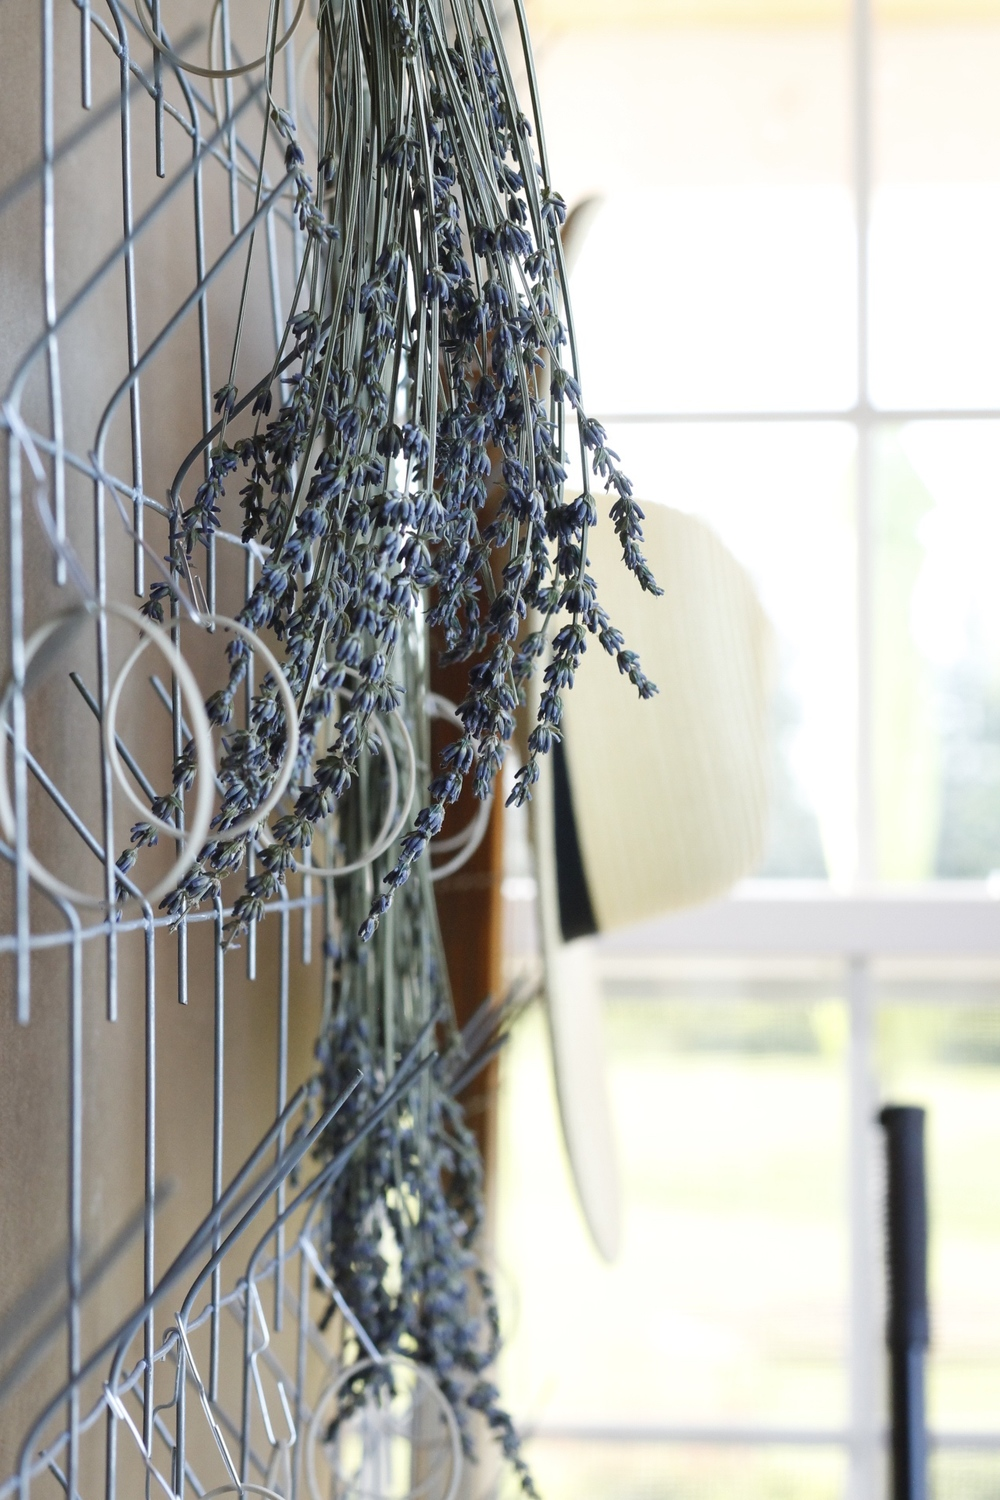 Lavender drying on the rack. Next to a floppy hat. Because what else would you wear on a Lavender Farm.